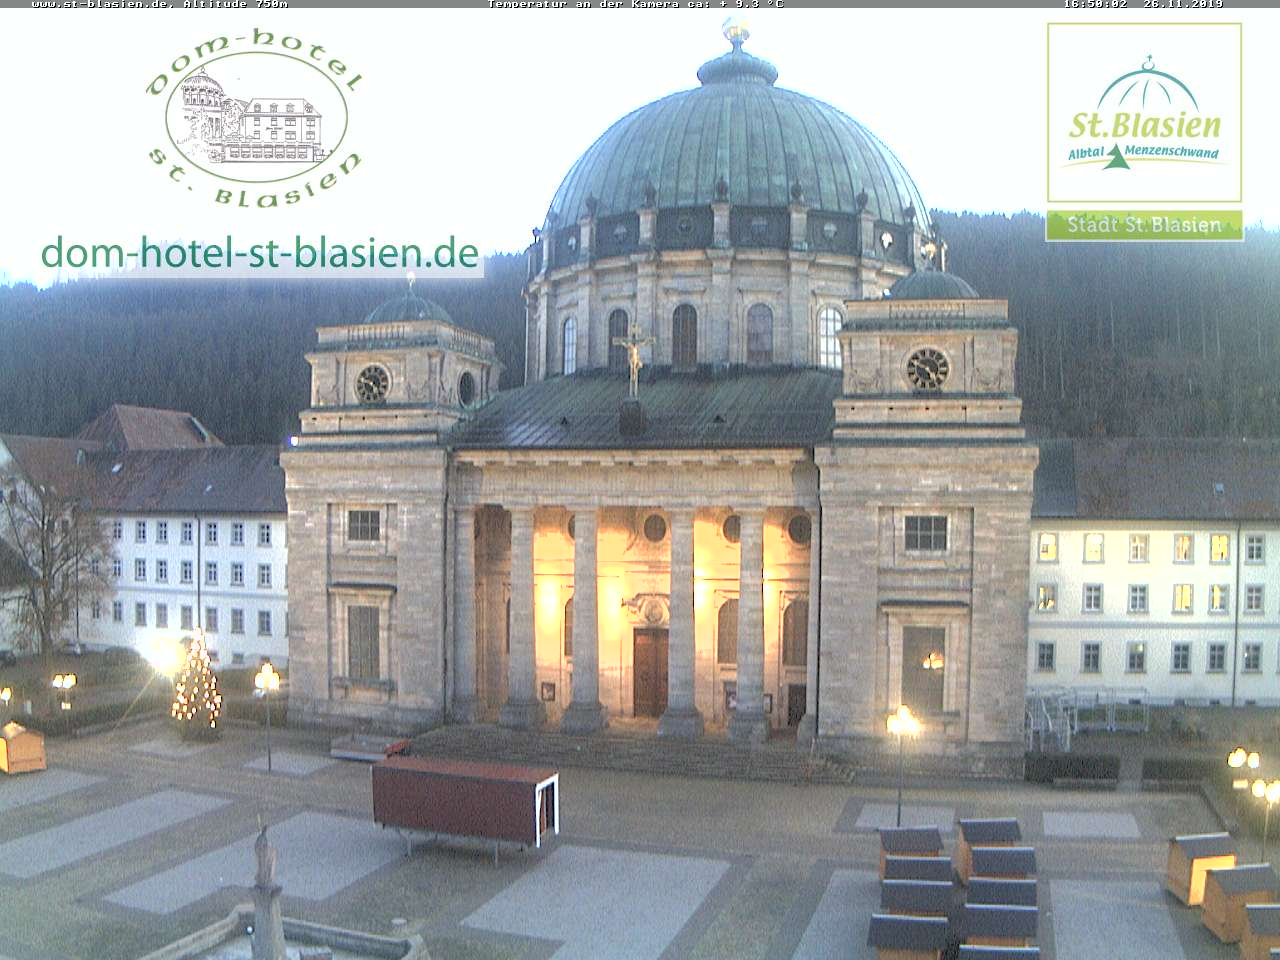 Webcam St. Blasien Domplatz